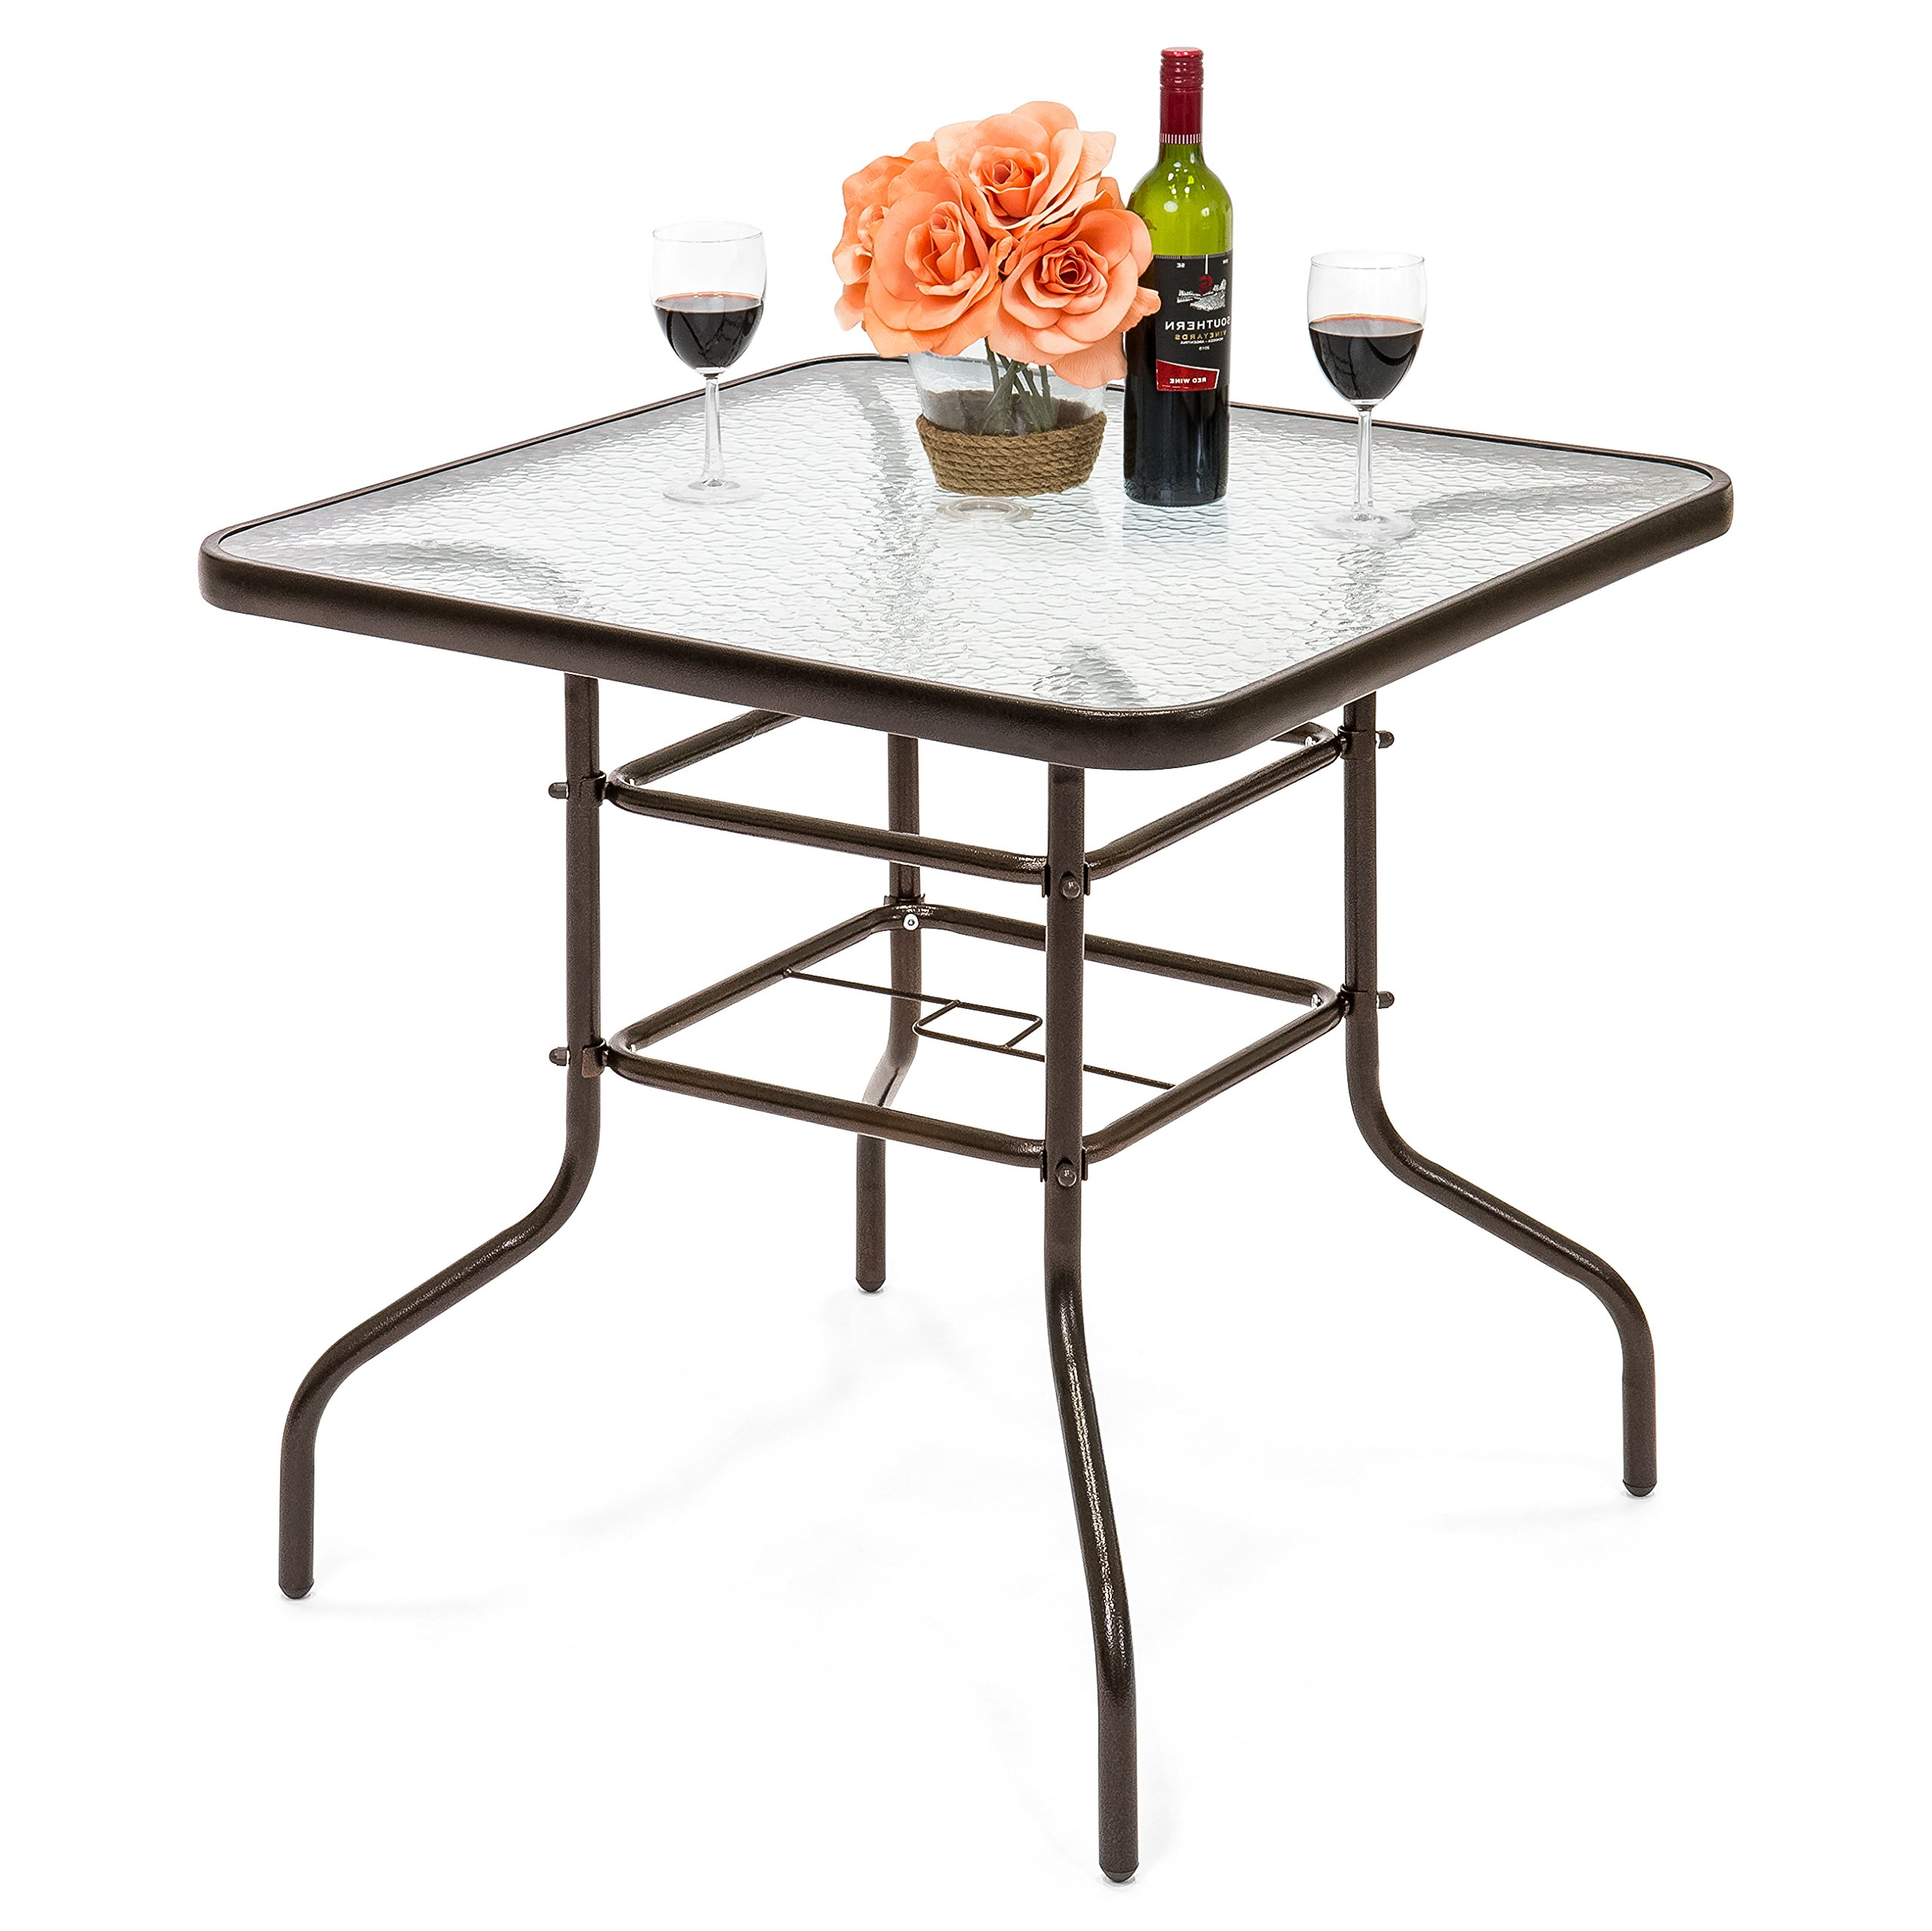 Patio Square Bar Dining Tables Pertaining To Most Recently Released Allblessings 32 1/2 Patio Square Bar Dining Table Glass Deck (View 5 of 25)